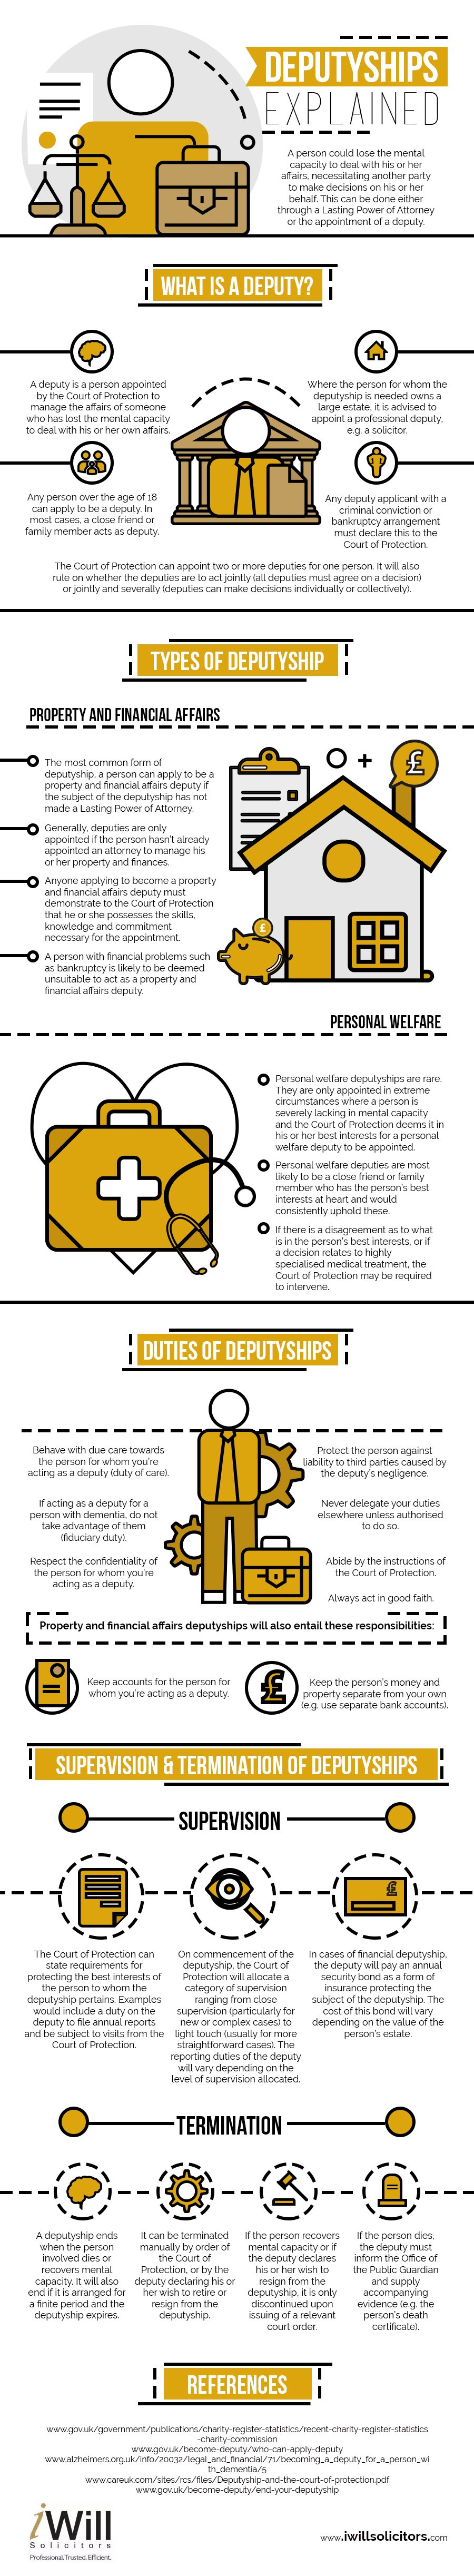 Deputyships Explained